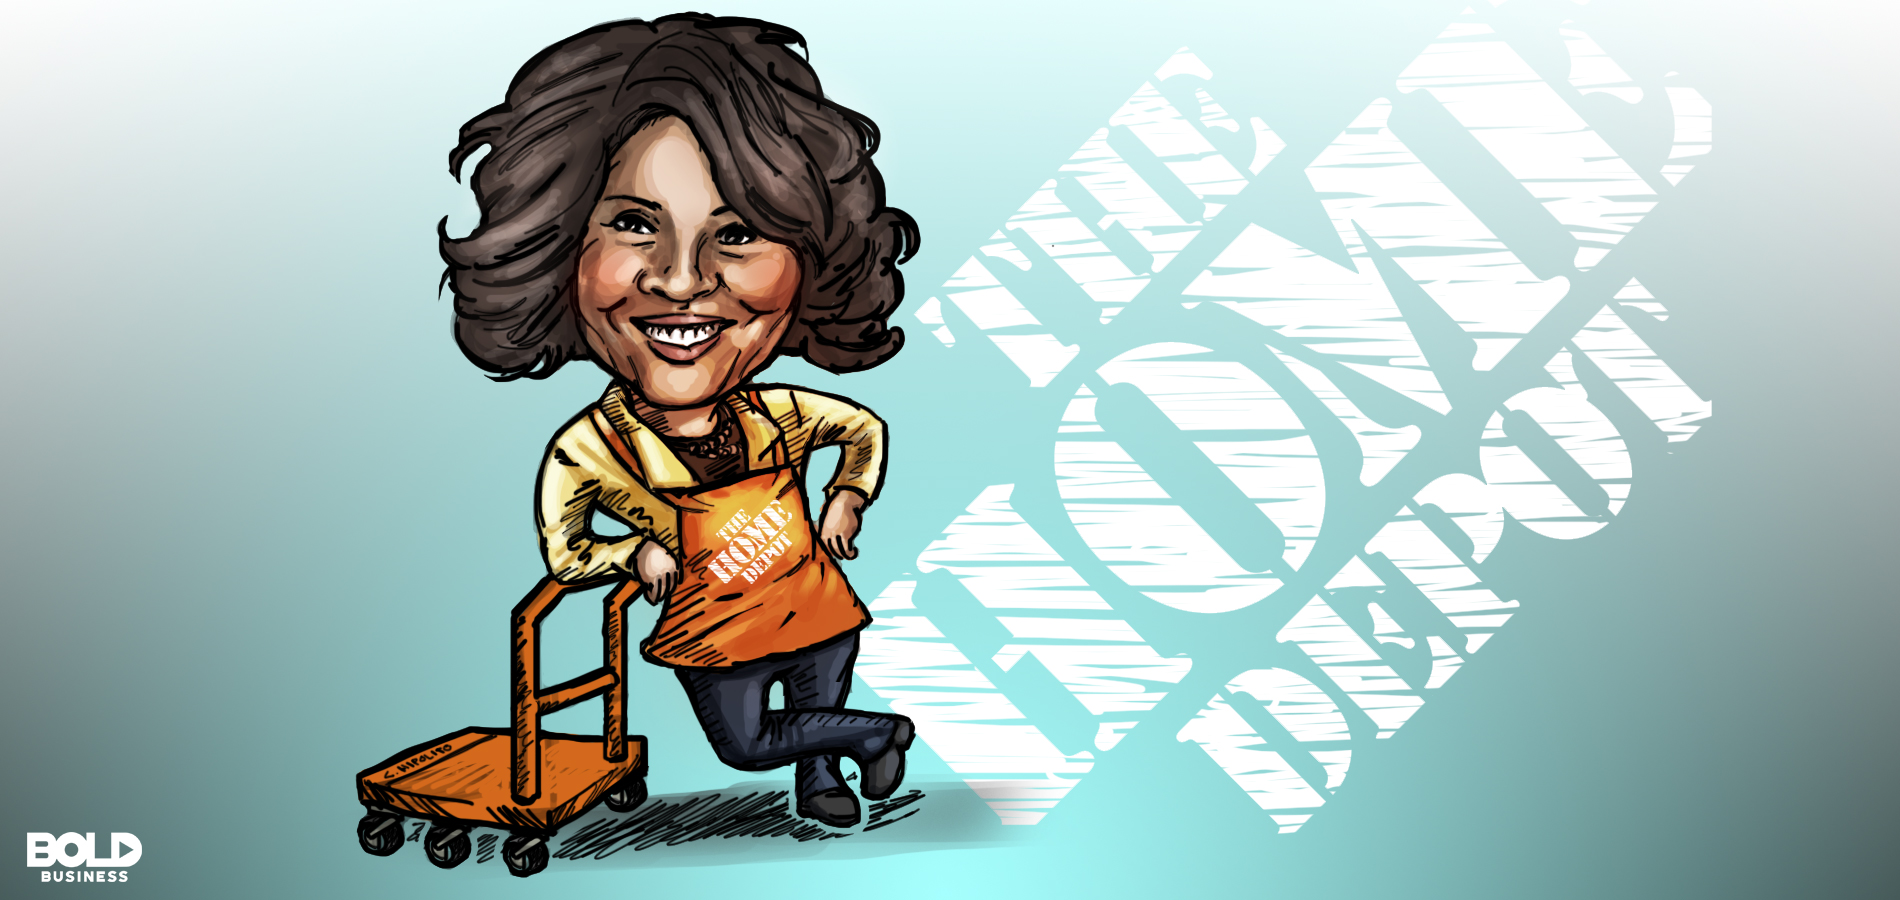 Cartoon of Bold Leader Ann Marie Campbell of Home Depot leaning on a trolley.